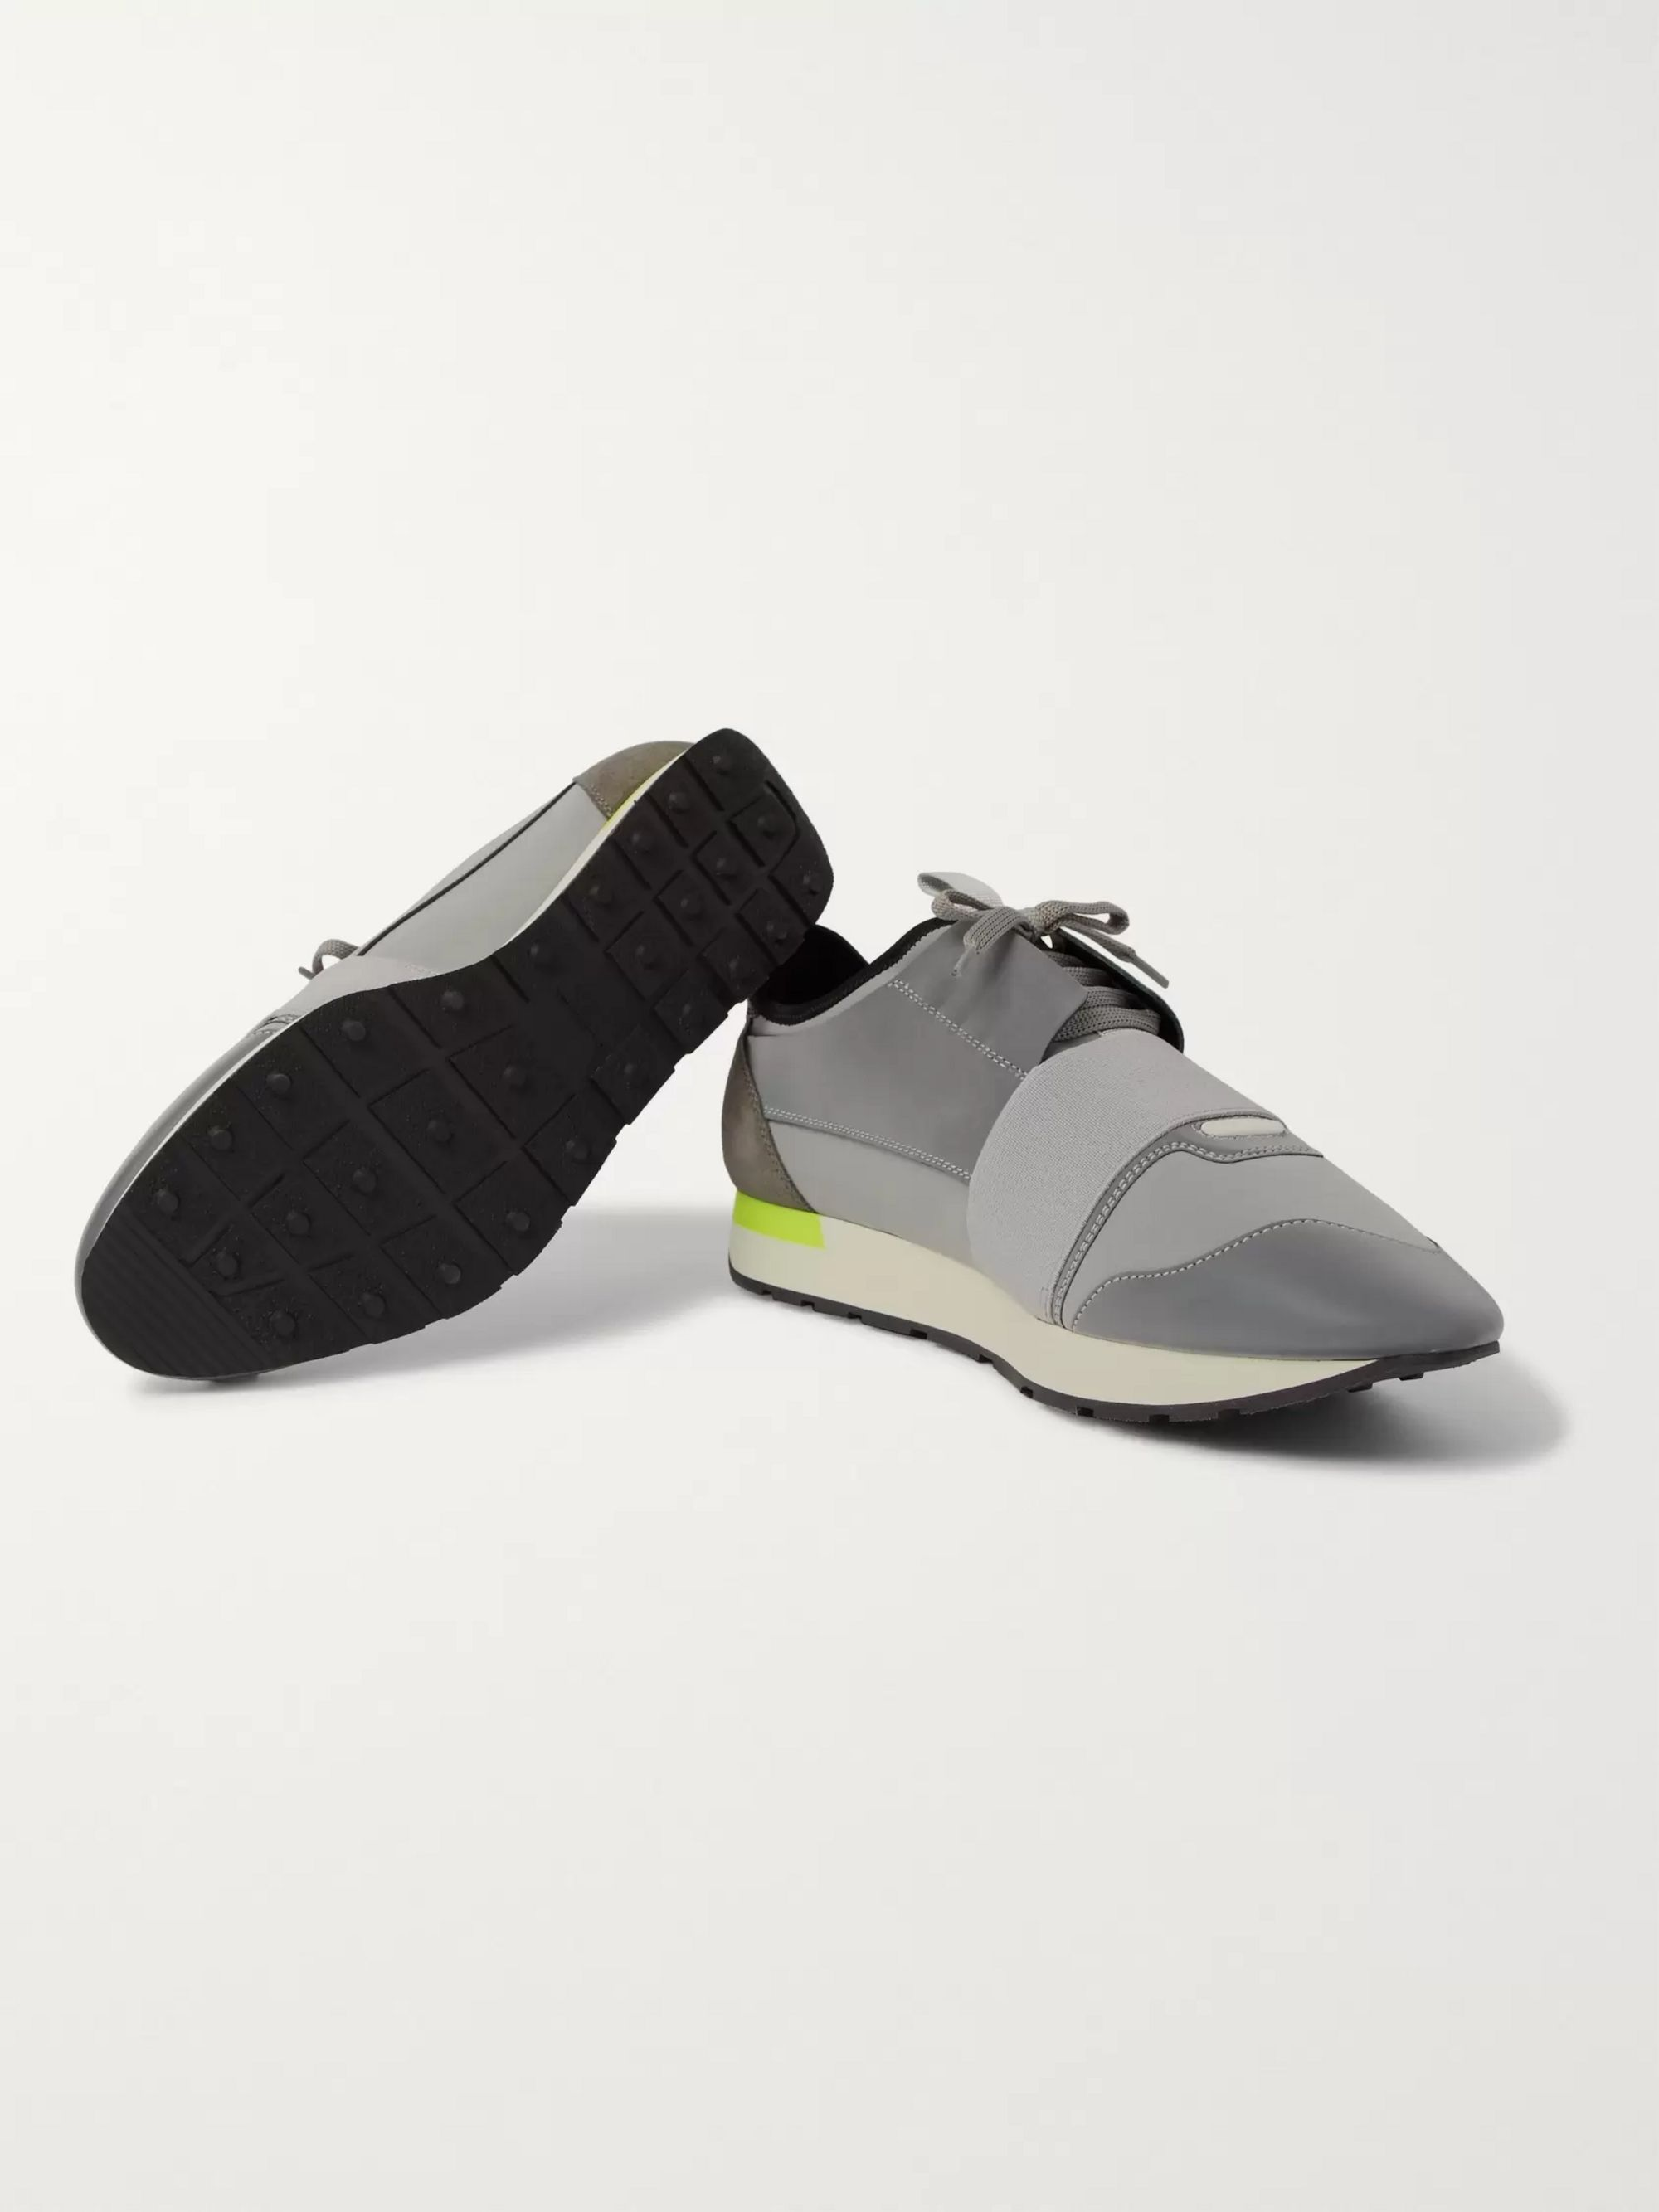 Race Runner Neoprene, Leather and Suede Sneakers